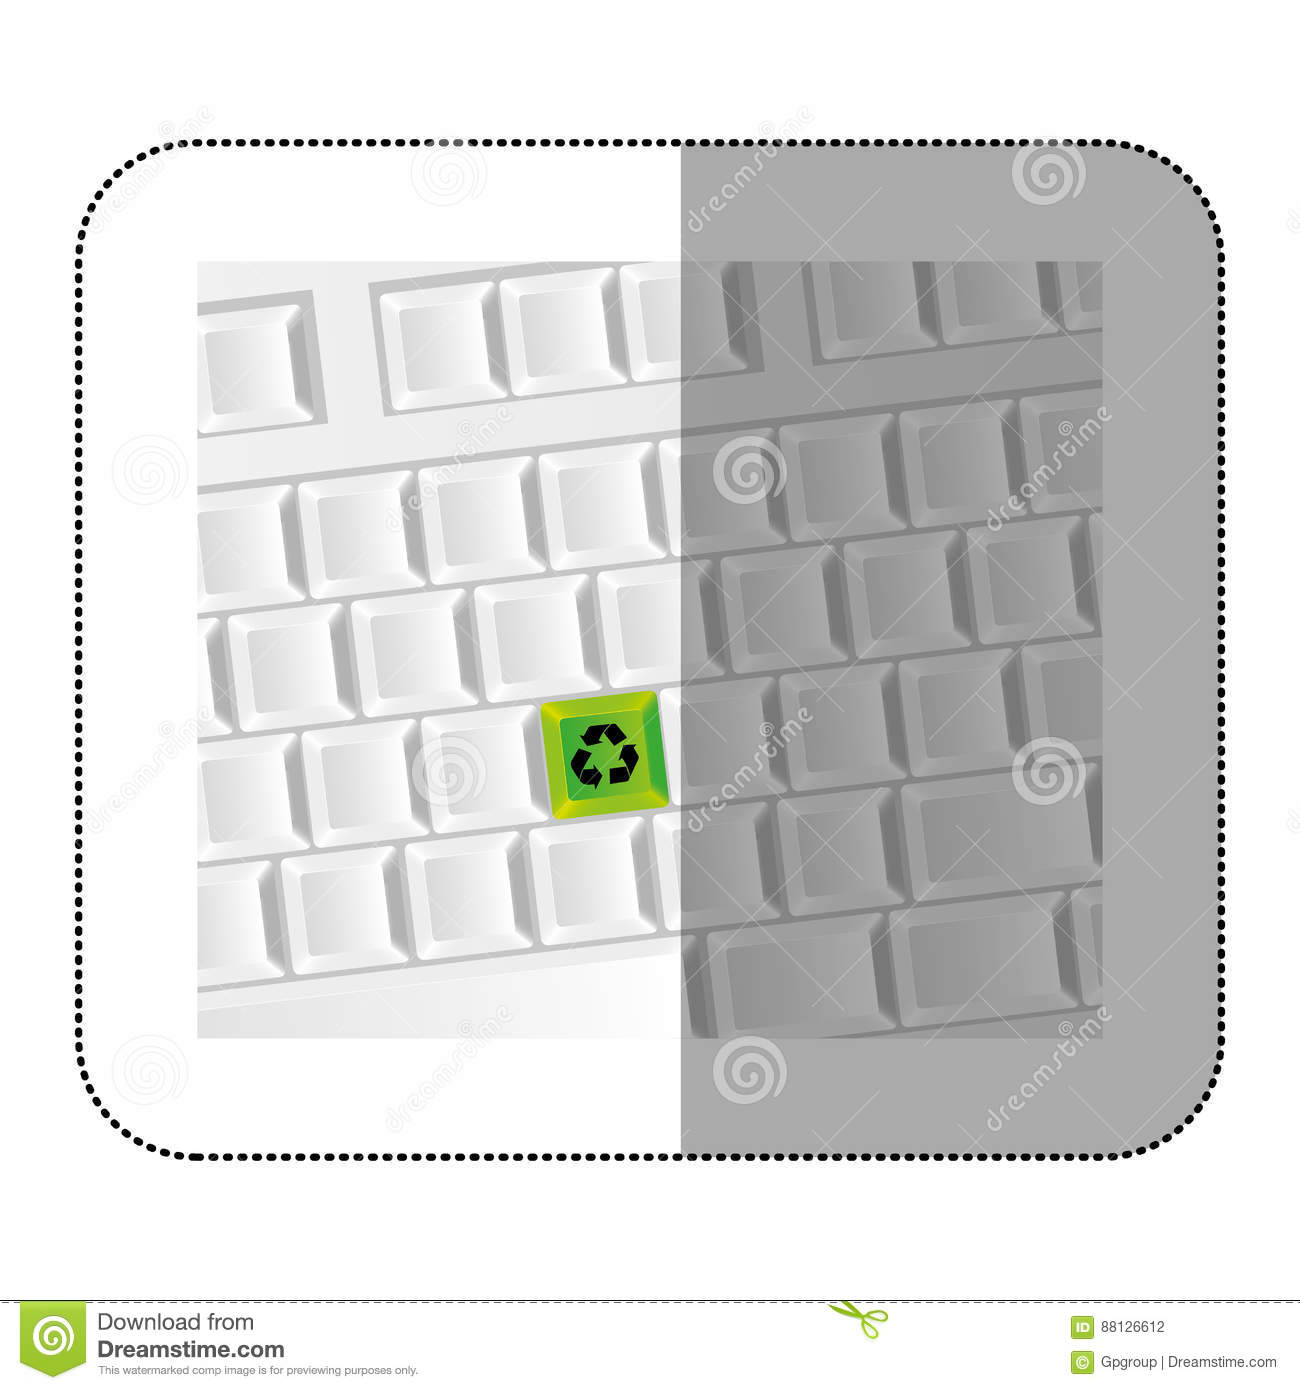 White computer keyboard with recycle symbol icon stock white computer keyboard with recycle symbol icon energy element buycottarizona Gallery